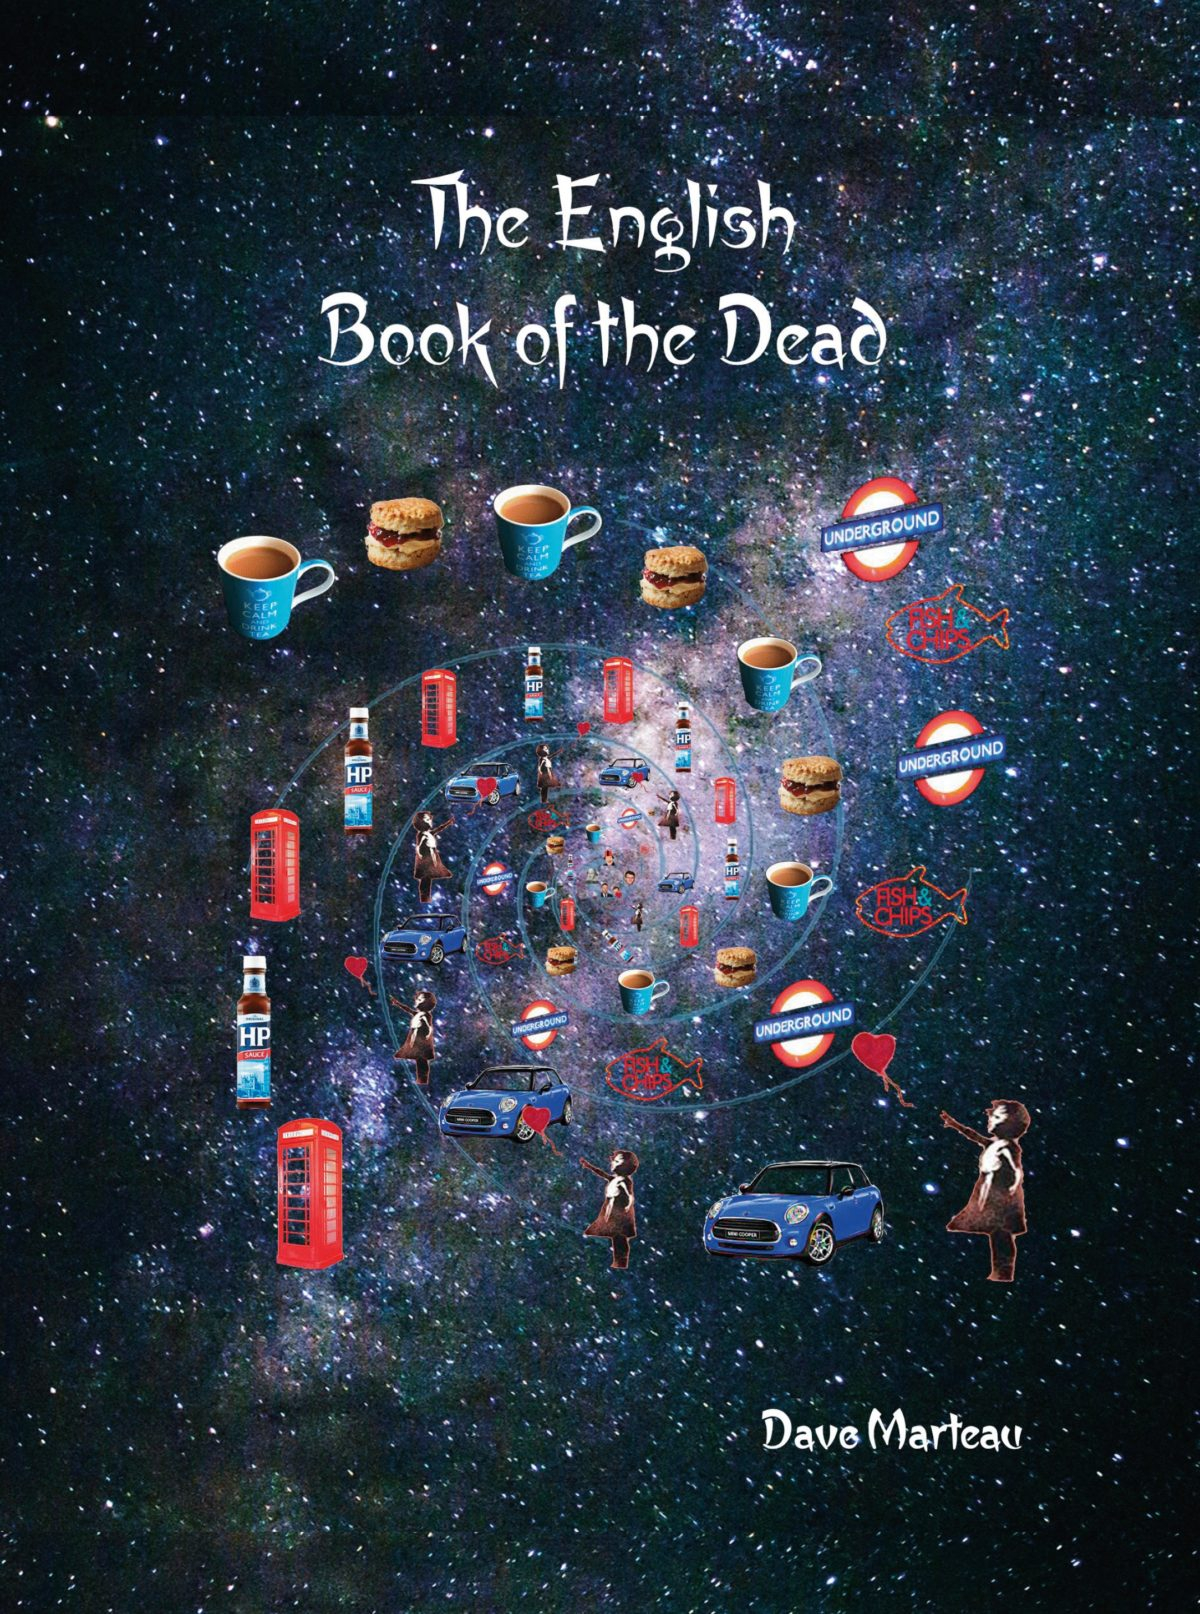 Dave Marteau's English Book of the Dead